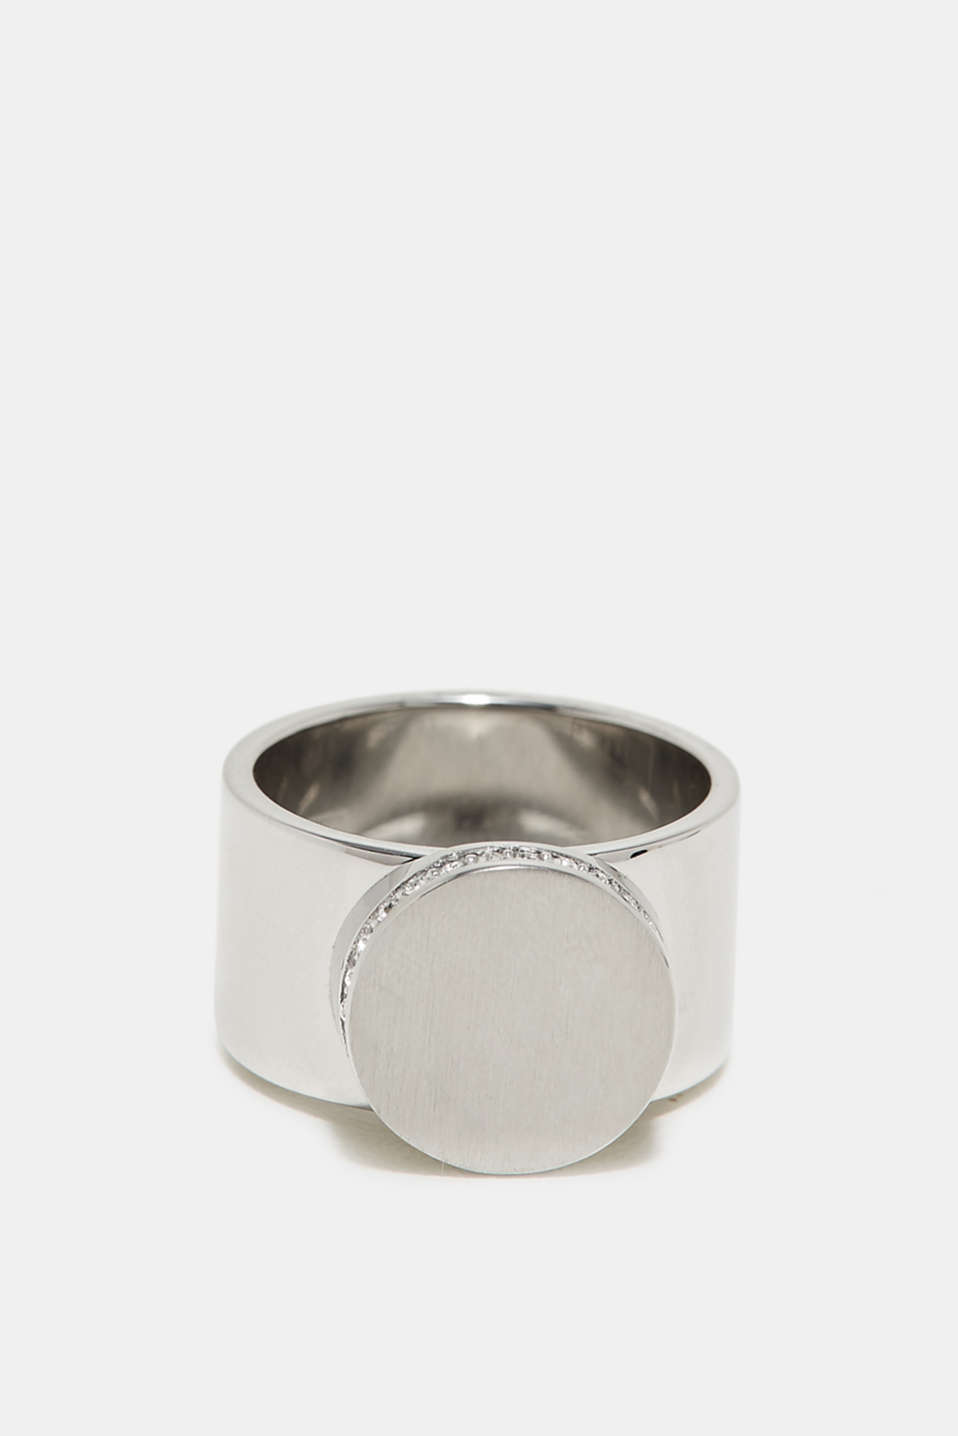 Esprit - Statement ring with zirconia, made of stainless steel